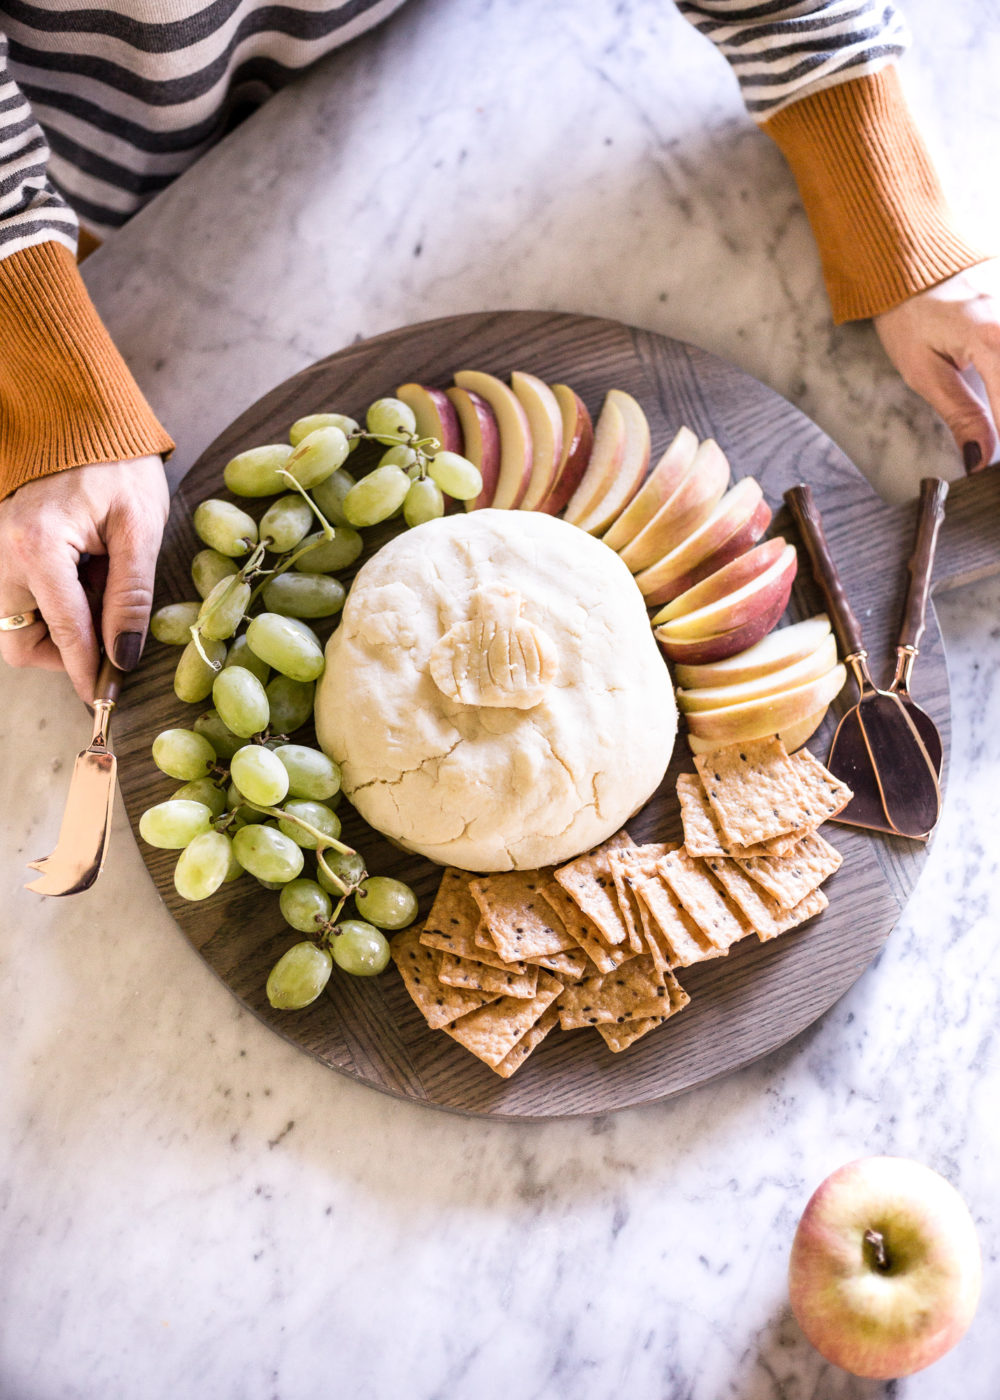 Quick and easy baked brie recipe perfect for entertaining your guests this fall.